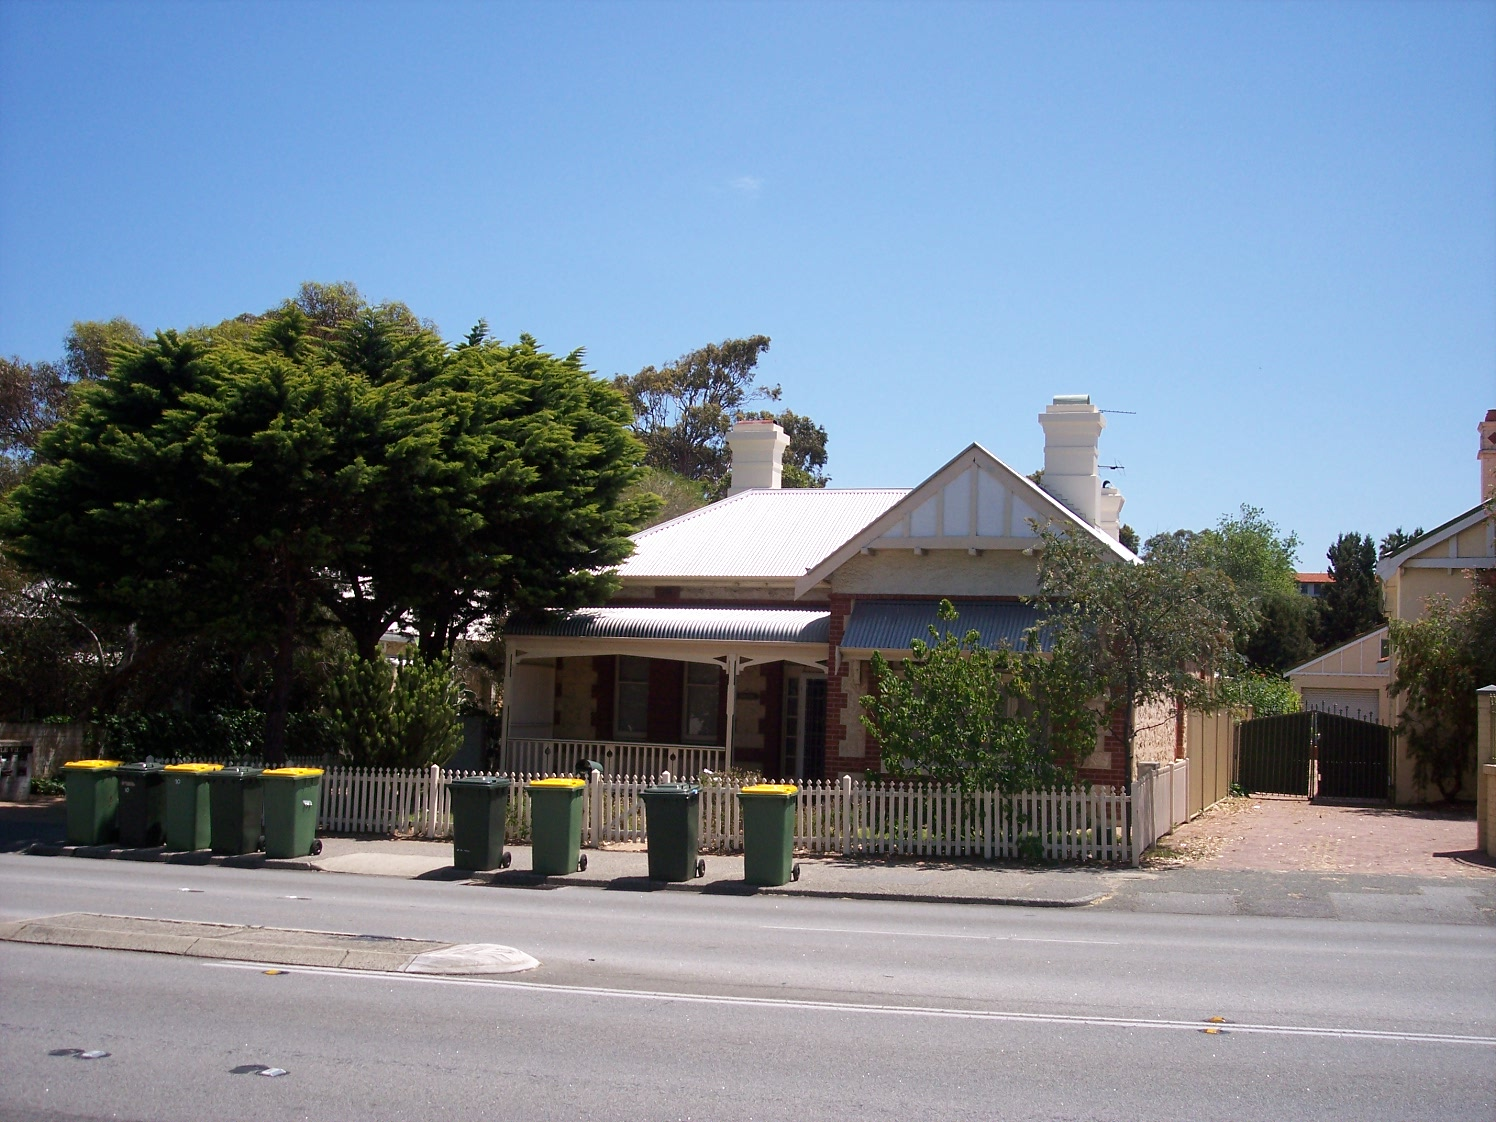 31-10-06 View N 194A Canning Highway.jpg